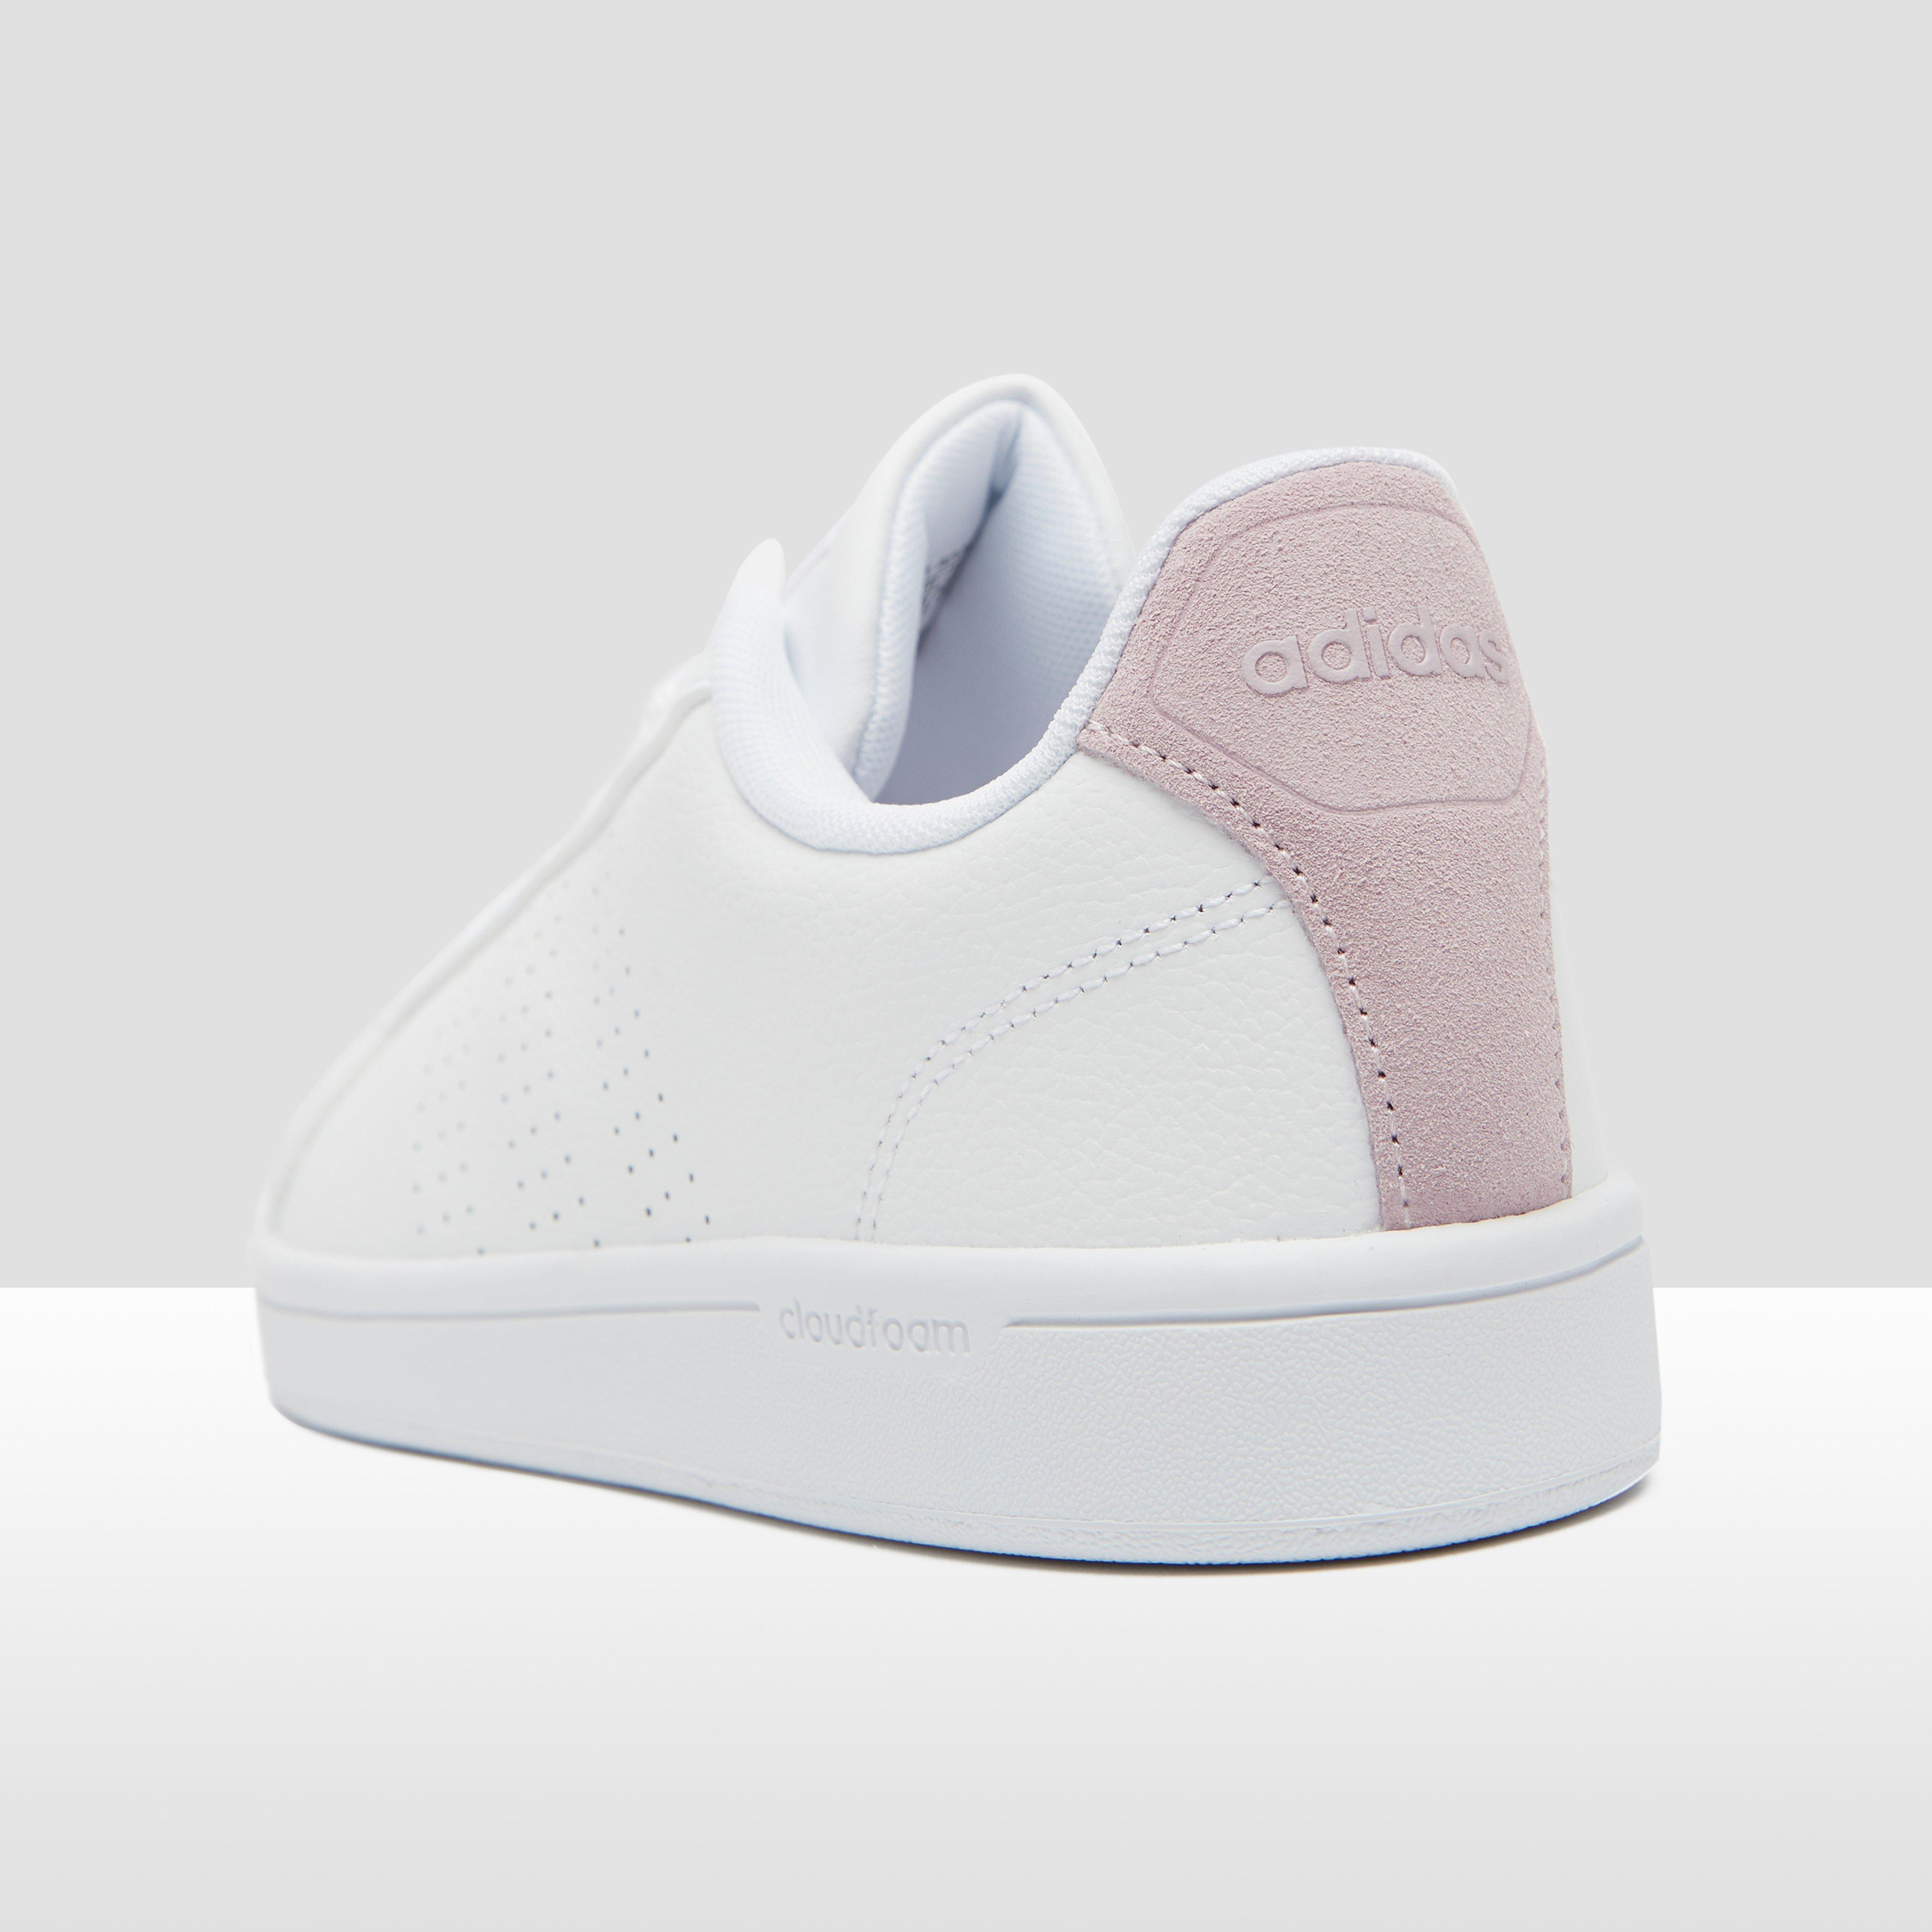 Adidas Sneakers Witte Sneakers Adidas Dames Witte l1JcKF